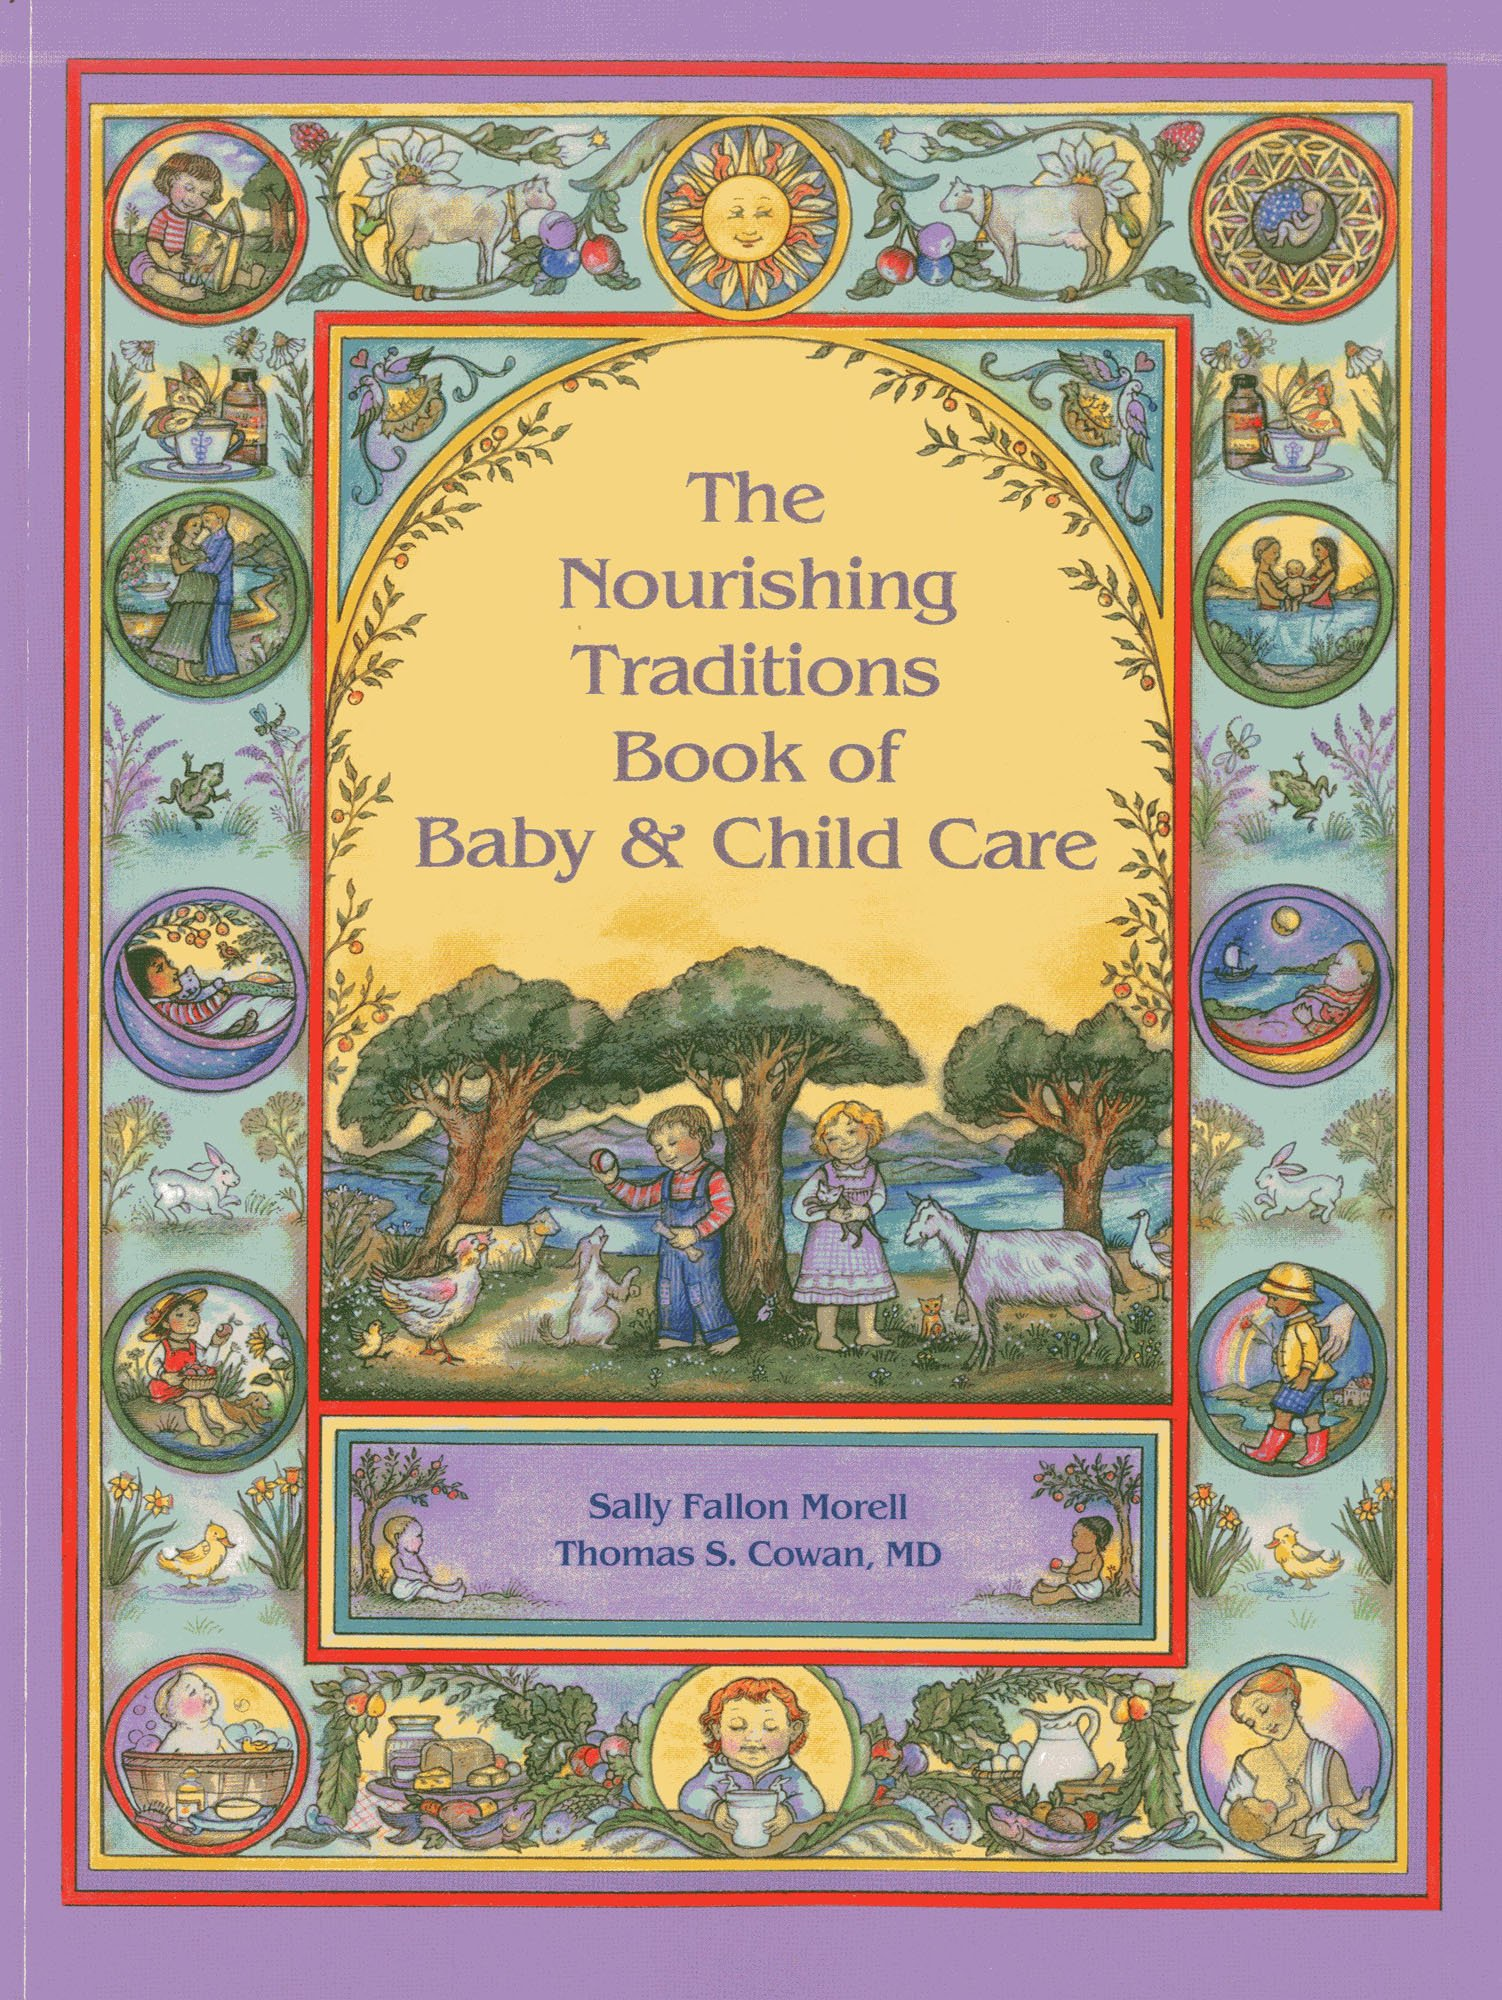 """The Nourishing Traditions Book of Baby & Child Care - by Sally FallonThe Nourishing Traditions Book of Baby & Child Care makes the principles of traditional nutrition available to modern parents.The book provides holistic advice for pregnancy and newborn interventions, vaccinations, breastfeeding and child development, as well as a compendium of natural treatments for childhood illnesses, from autism to whooping cough. The work of Rudulf Steiner supports the book's emphasis on the child's spiritual requirement for imaginative play.An Excellent Review from a Parent:To me, this is the most important resource to have for raising healthy children. I am pregnant with my 2nd child and follow the extremely nutrient dense pregnancy diet from this book. I've also followed the food introduction schedule for my first born (3 yo now) to ensure he grows up loving and eating REAL FOOD- not crap food laced with sugar and chemicals like cereal, processed/boxed/bagged """"foods"""", juice, waffles, artificially colored anything, pizza, etc which gives children zero vitamins and nutrition.My son eats and loves broccoli, salmon, chicken, eggs, fruits, beans, nuts, cod liver oil, avocados, coconut oil, bone broth soups...all because of what I've read in this wonderful book. I truly believe because he has grown up on these nutrient dense foods and healthy fats like CLO, coconut oil and real butter, his memory is astounding (brains REQUIRE fats to function optimally!).I am constantly referring to it not just for diet, but for alternative cures for childhood sickness, how to make your home as healthy as possible, baby and child care, vaccines, supplementation, child milestones, recipes, to name a few. If you want to have a truly healthy pregnancy and child, this is the book to follow."""